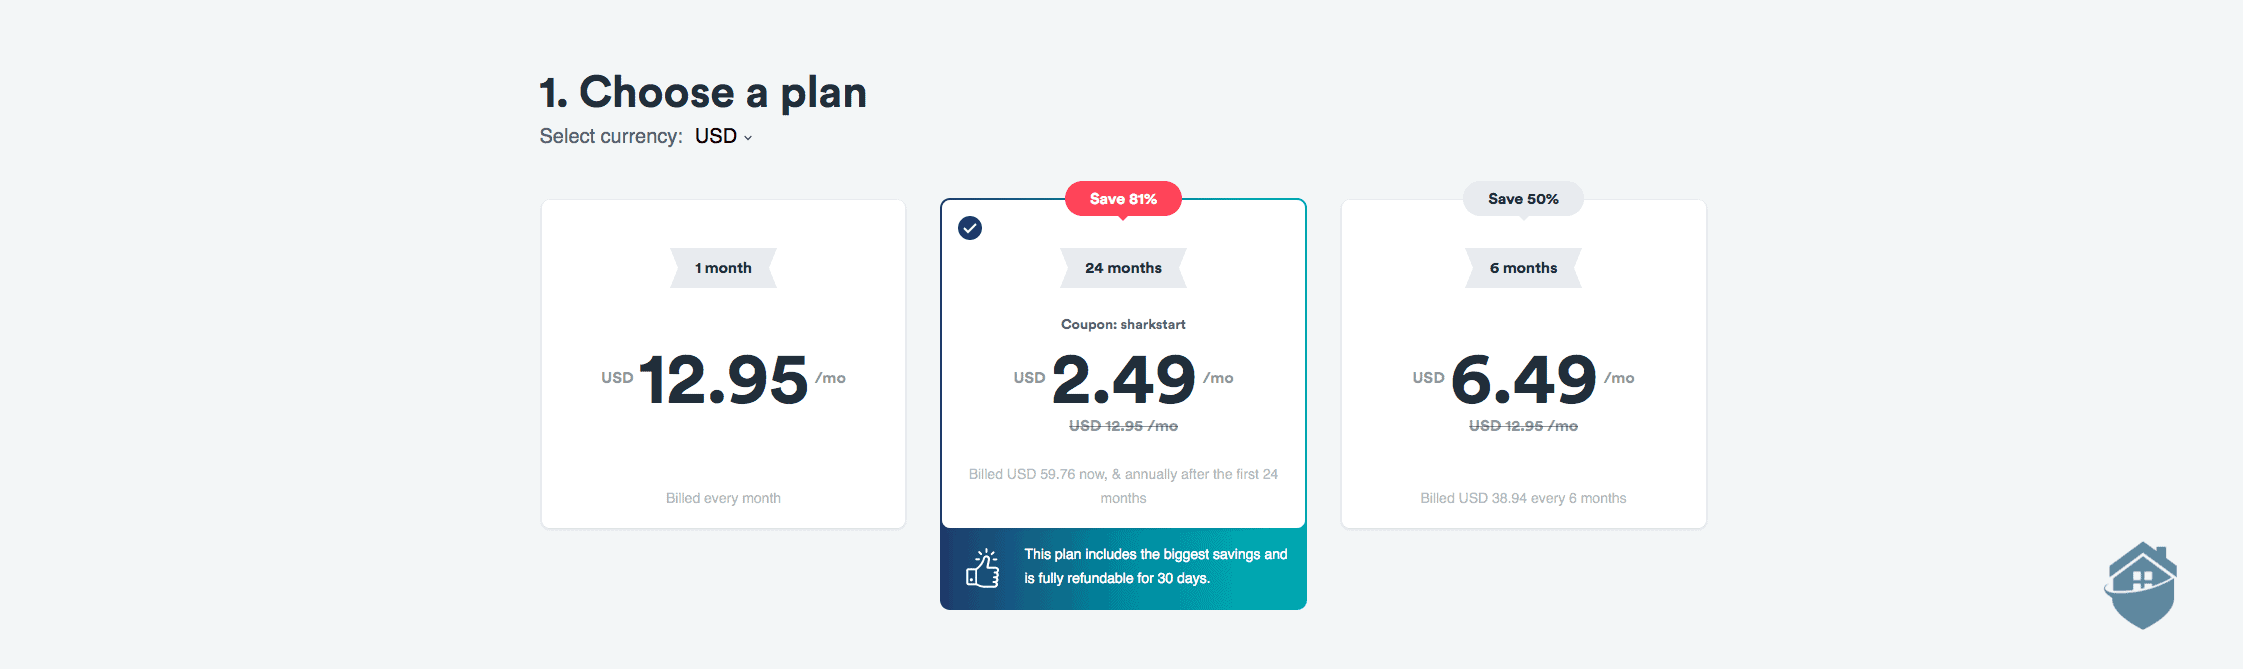 A Surfshark subscription costs only $2.49 per month on the annual plan.